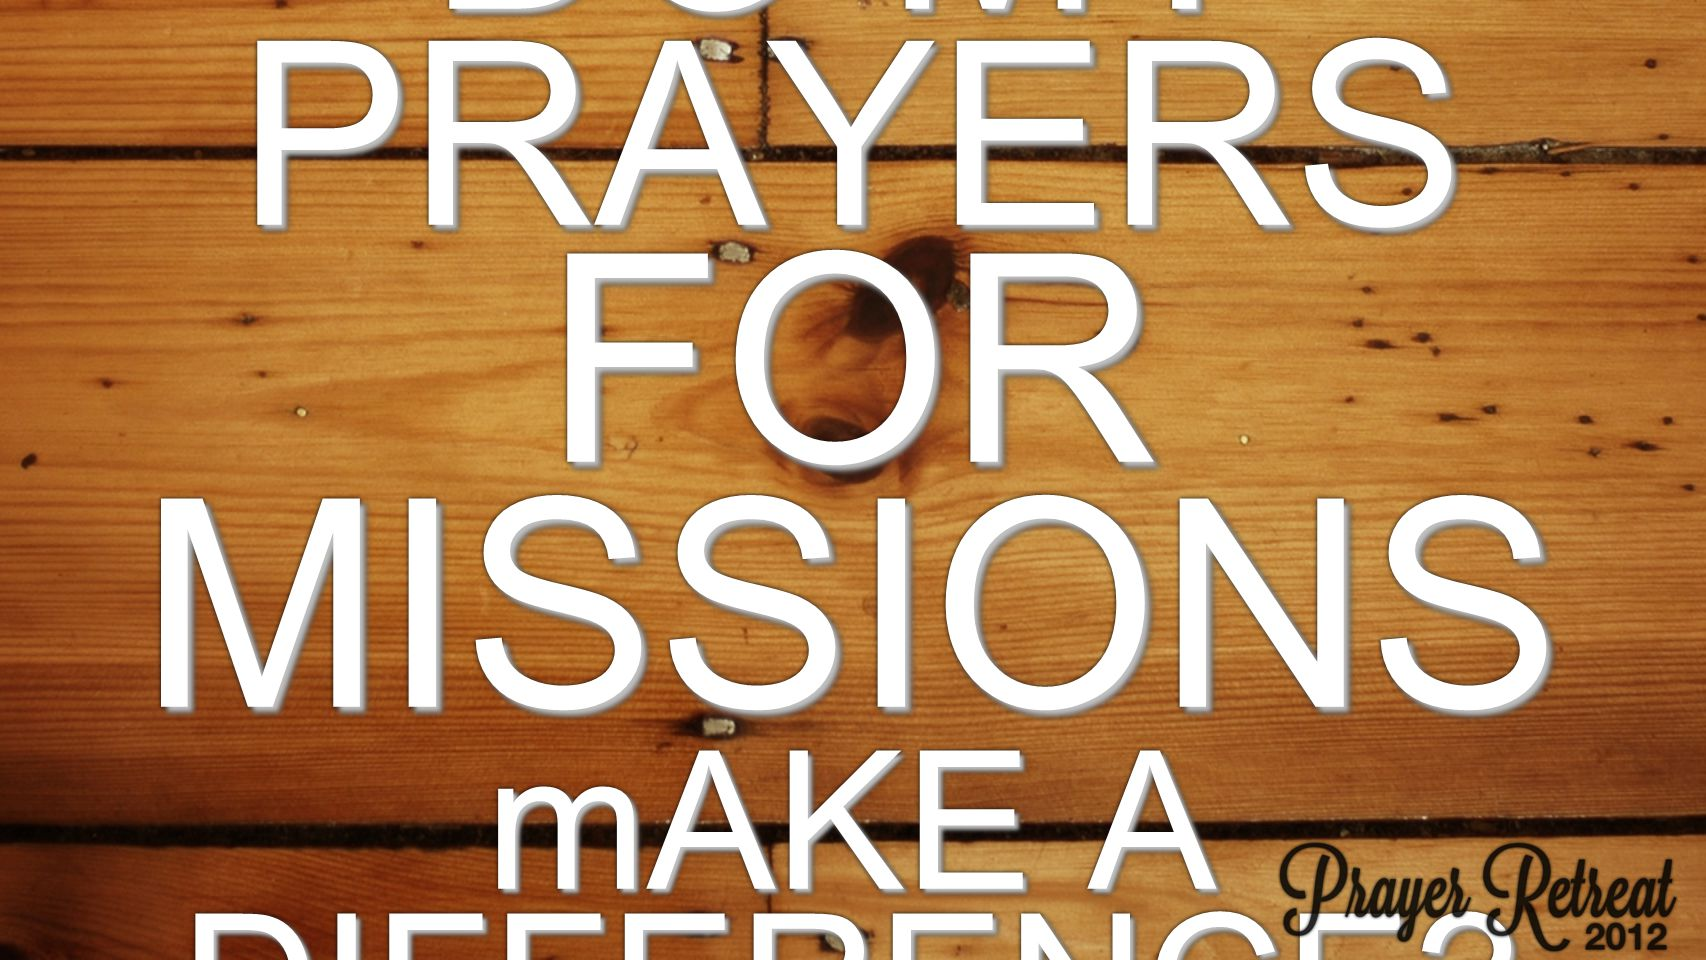 DO MY PRAYERS FOR MISSIONS mAKE A DIFFERENCE